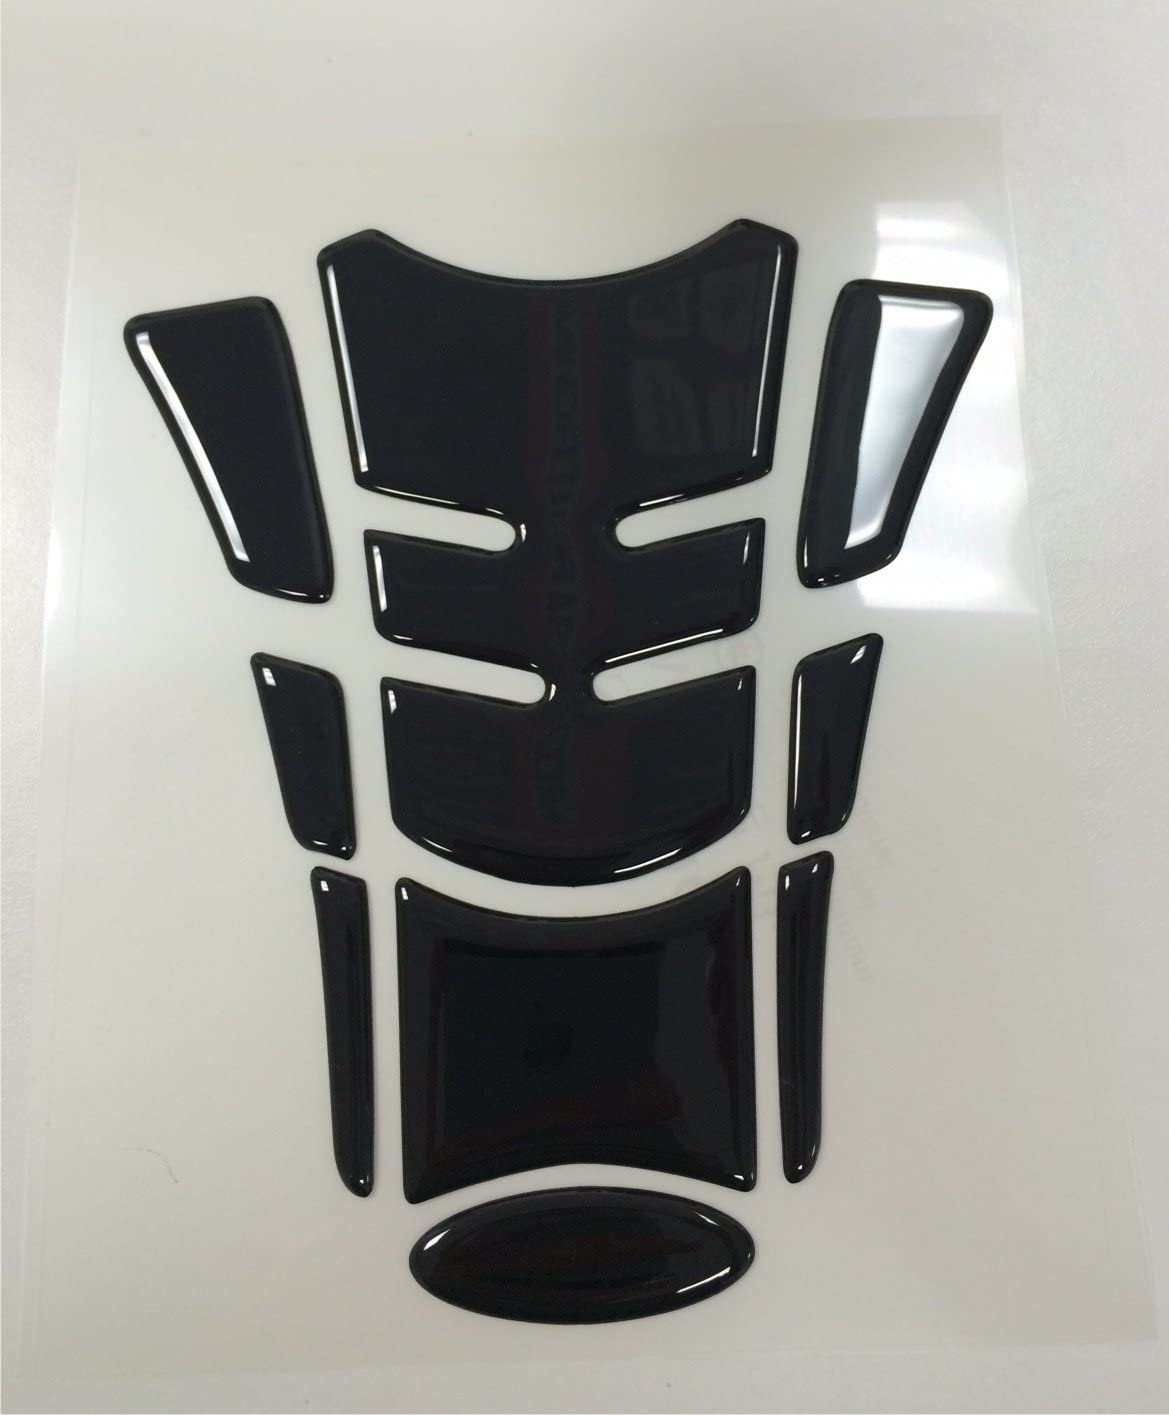 Exact Fit Yamaha YZF R3 YZF-R3 Black 3d Gel Motorcycle Gas TanK pad Protector Guard 7 inch tall x 6 inch wide